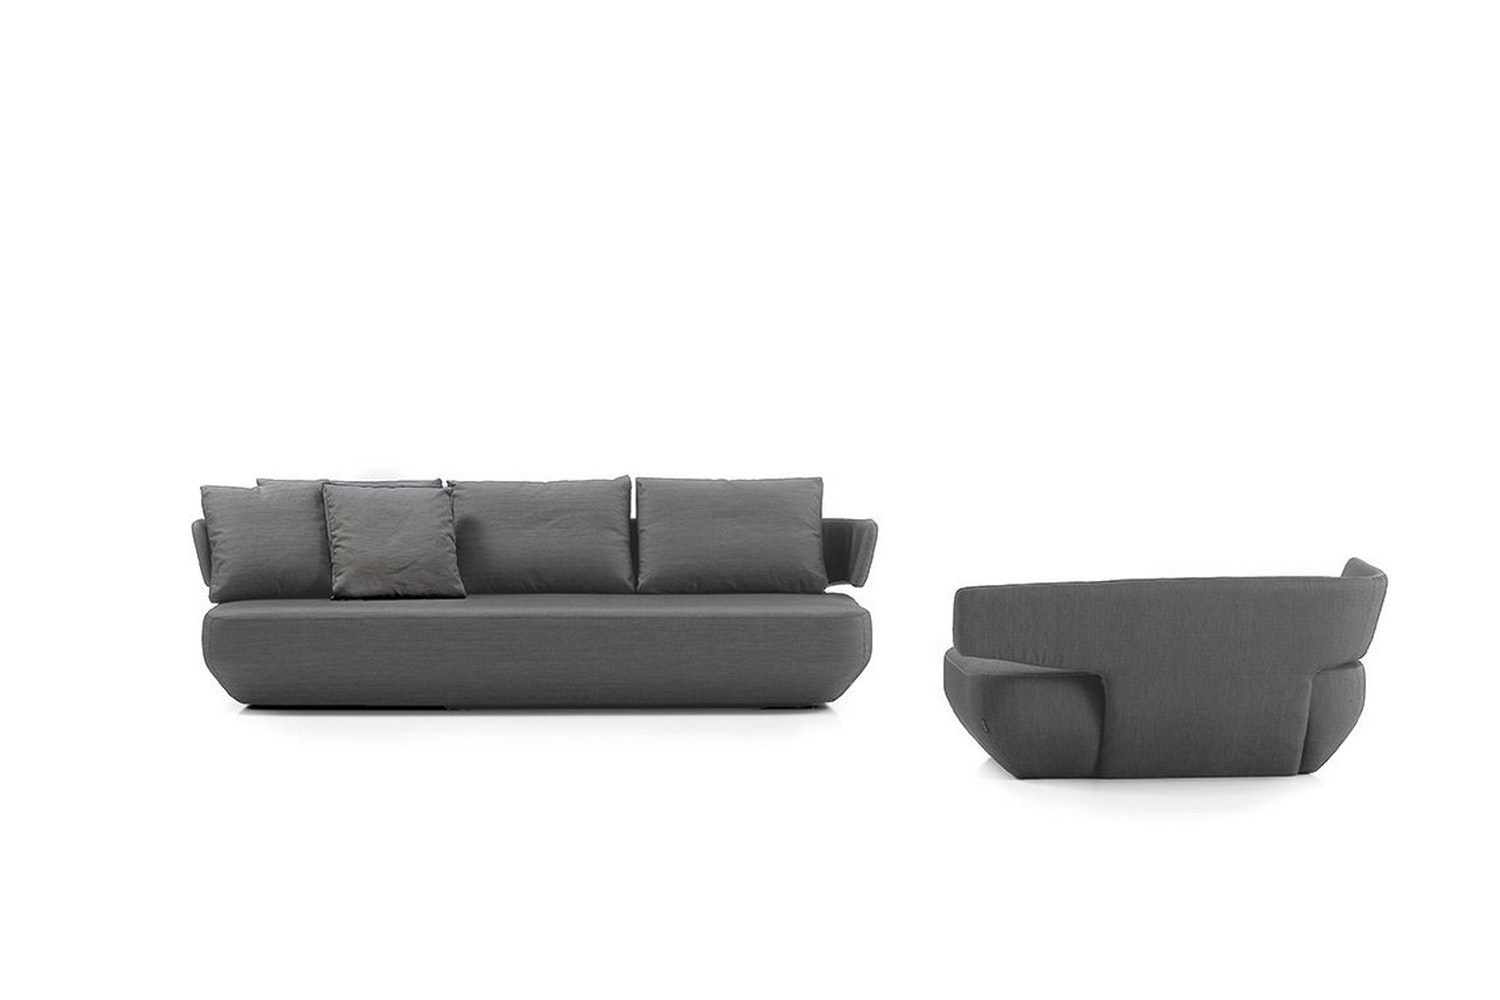 Levitt sofa by Ludovica+Roberto Palomba for Viccarbe